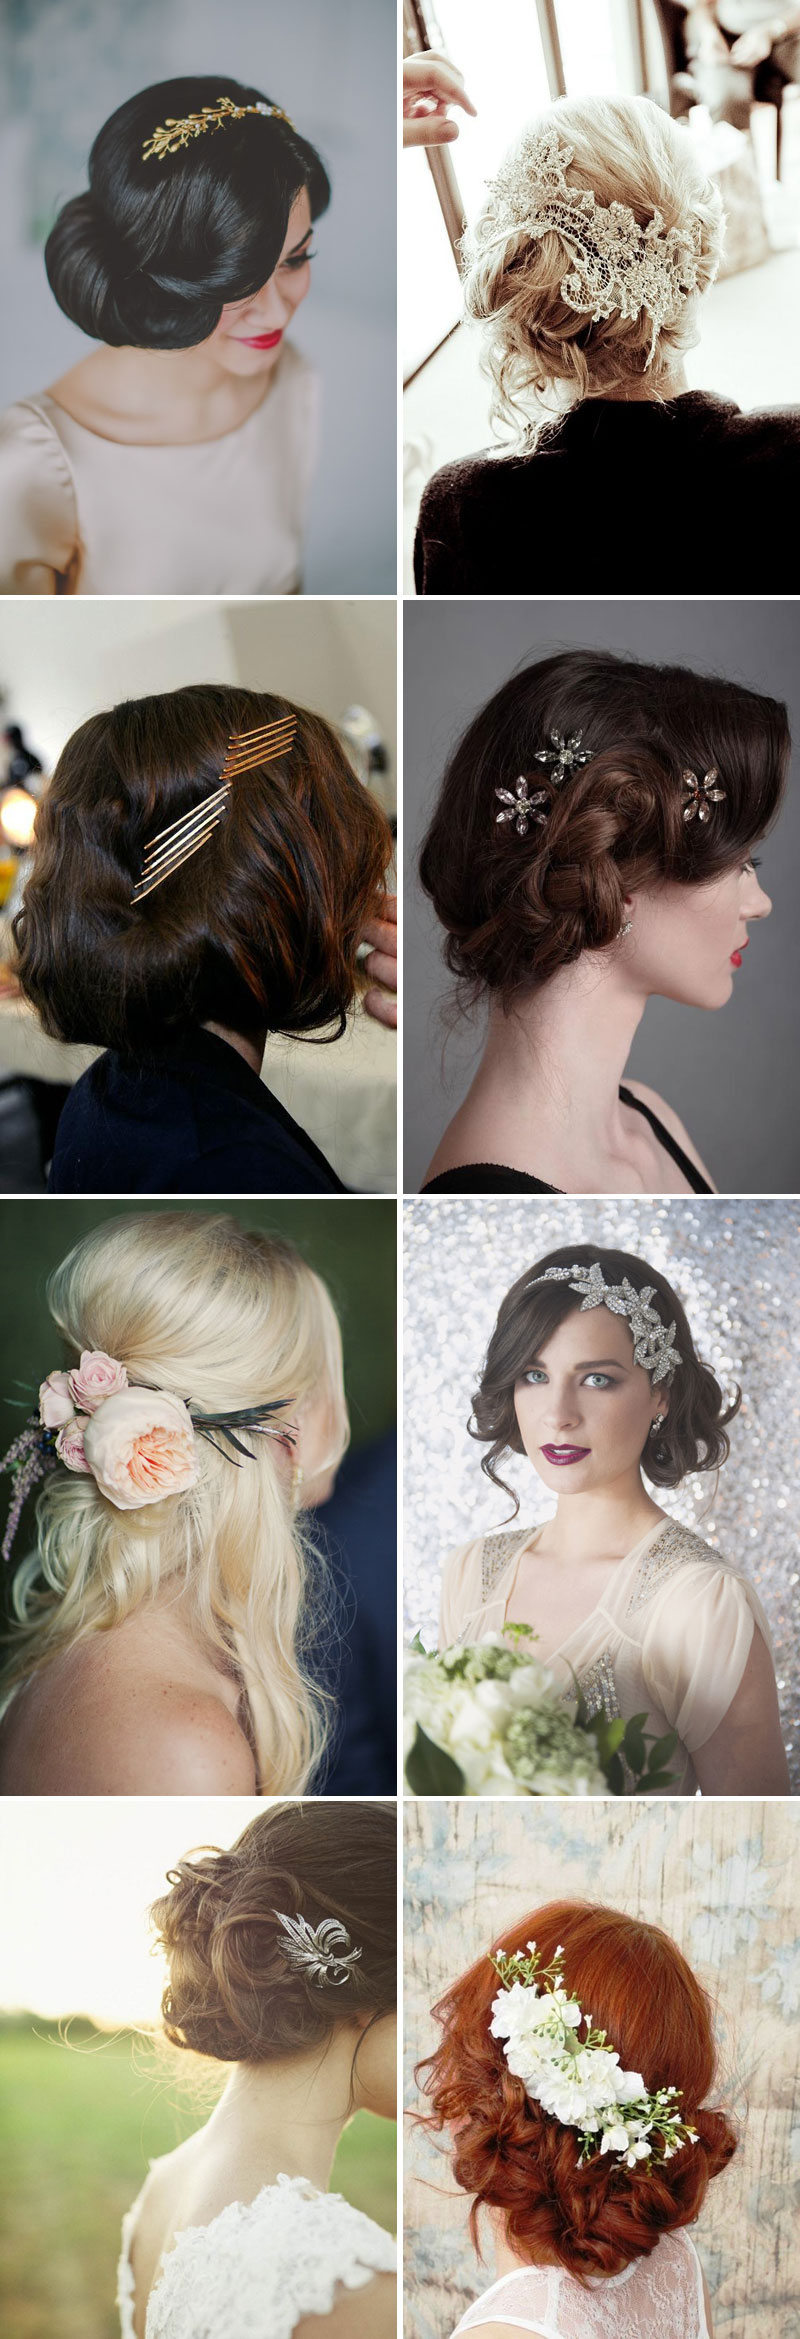 Embellished Wedding Hairpiece Inspiration